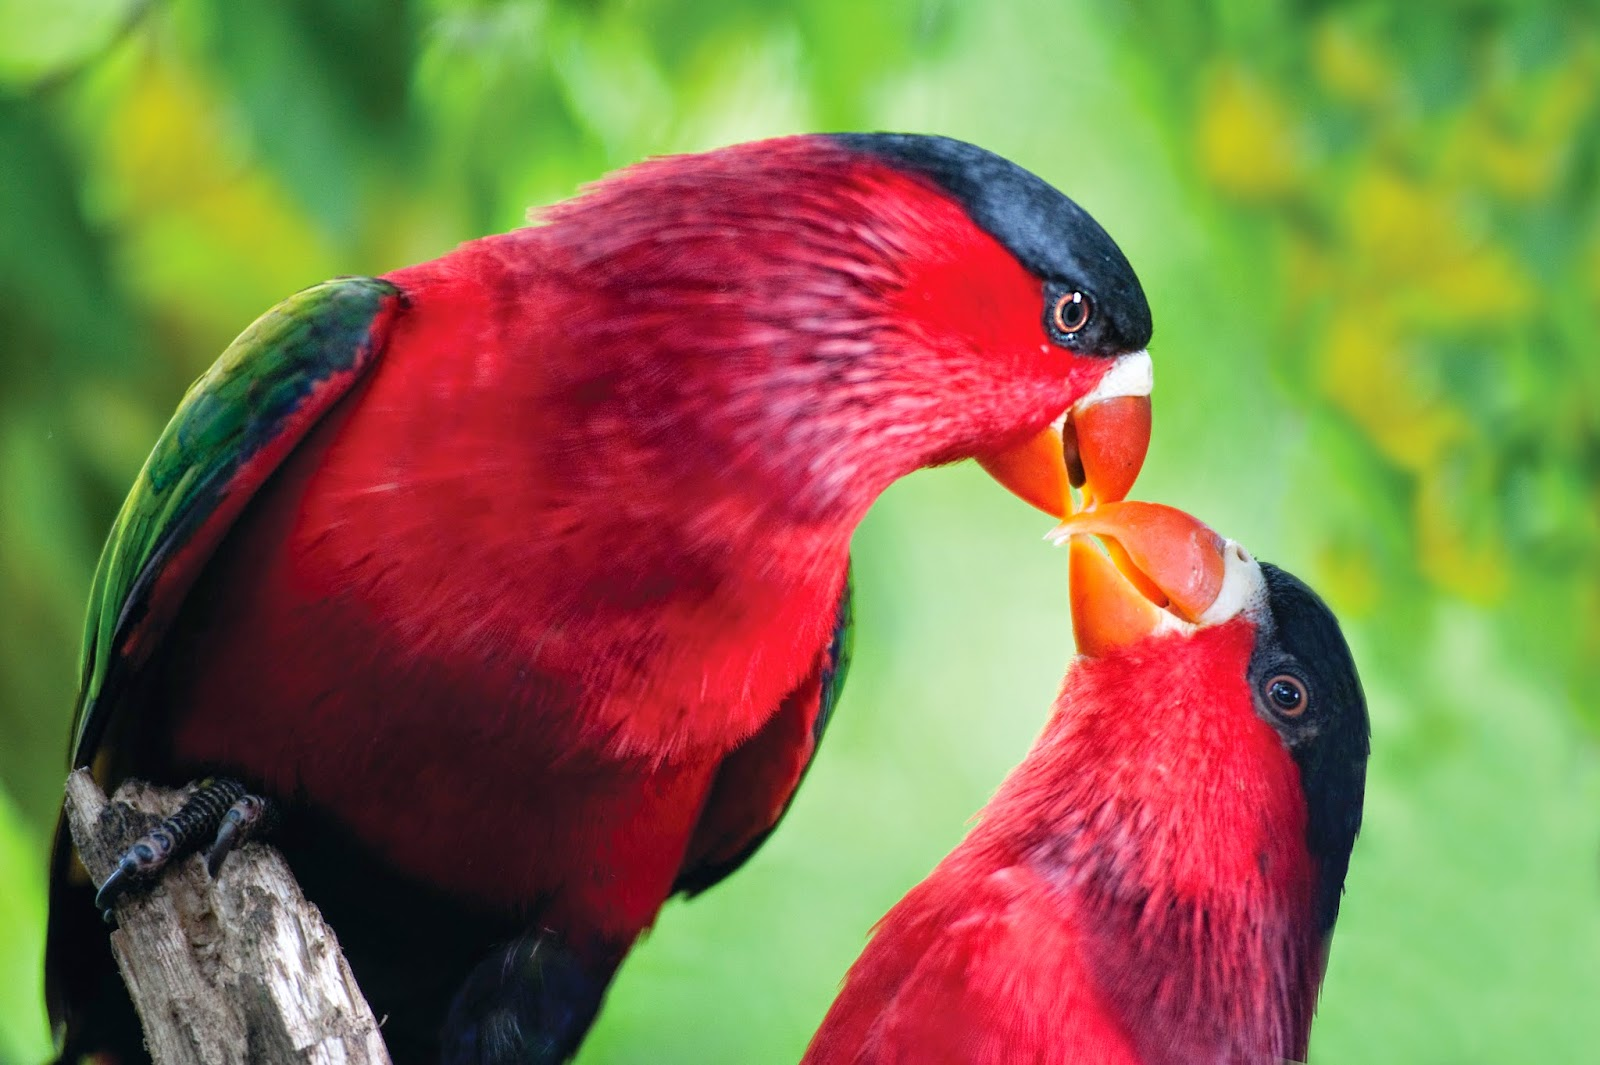 THE PURPLE-BELLIED LORY PARROT - Papua New Guinea